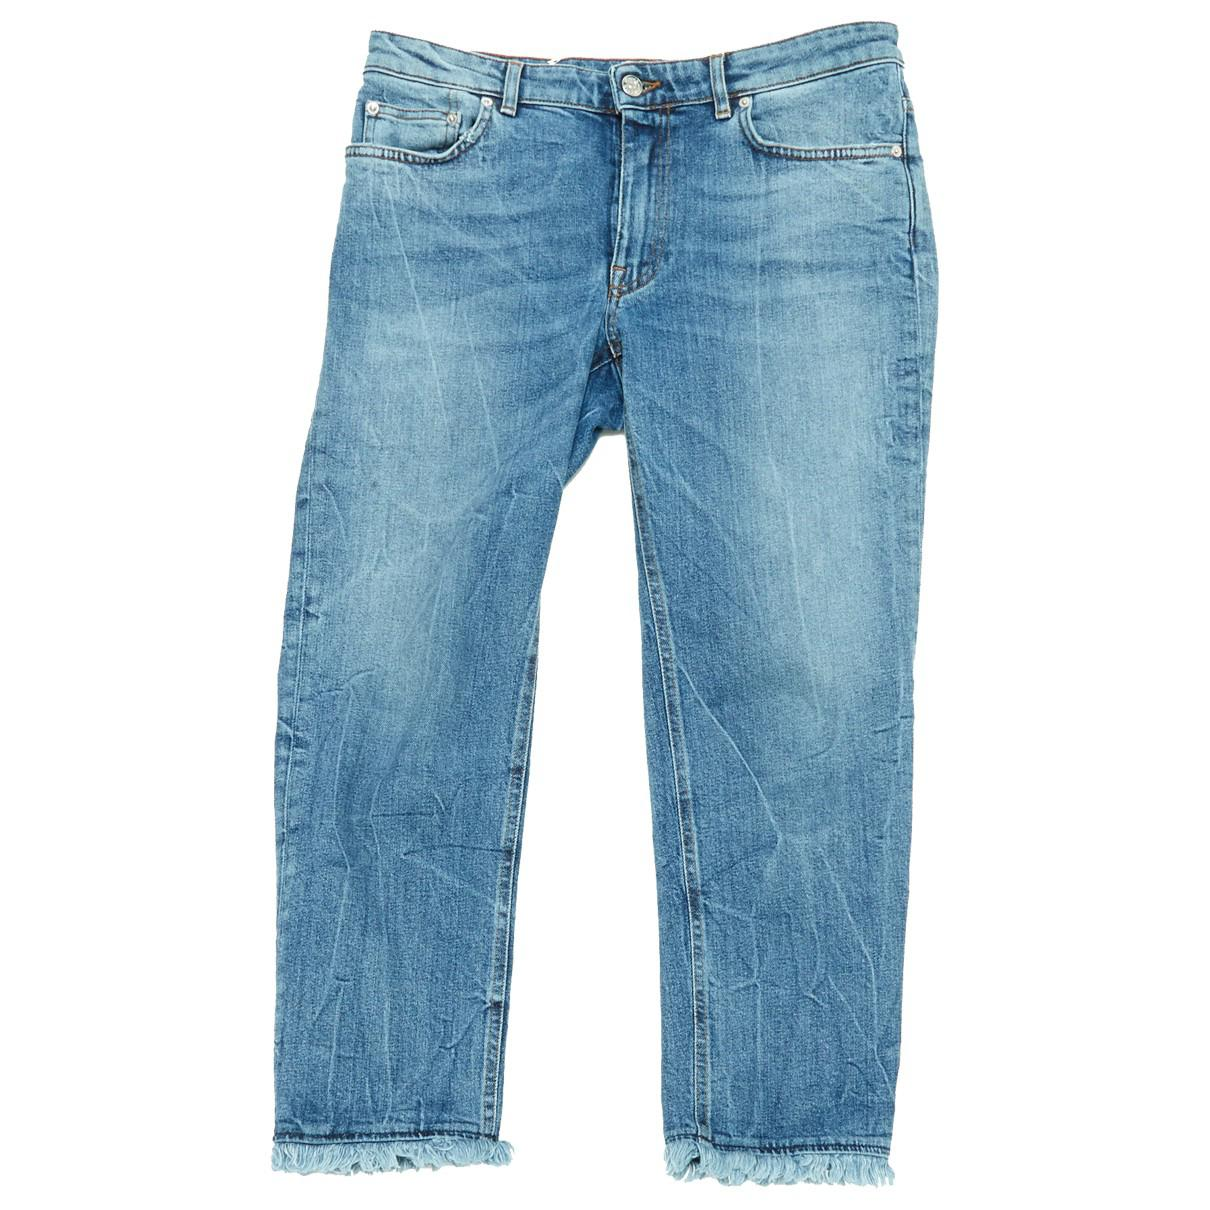 854850ae3f Acne Studios. Women s Blue Cotton Jeans.  170  153 From Vestiaire Collective